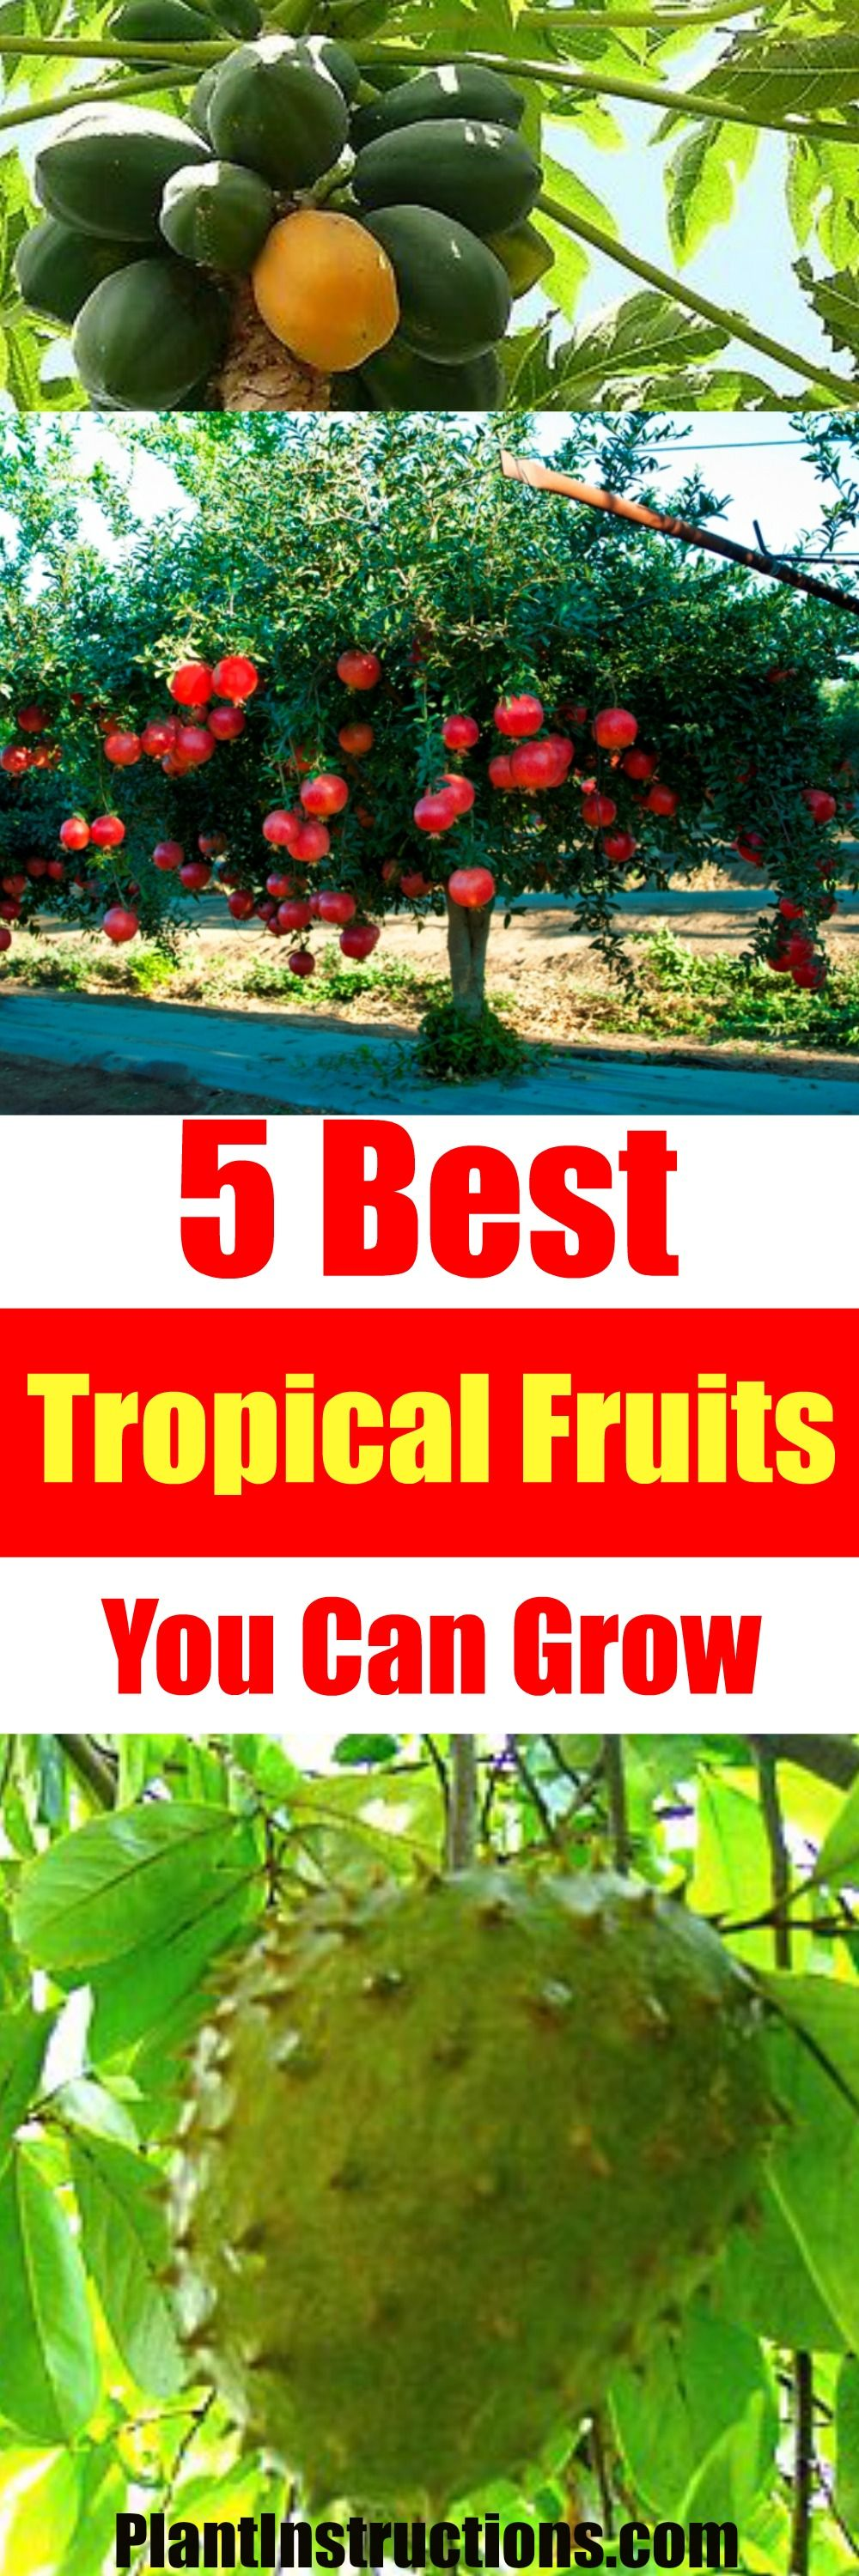 5 Best Tropical Fruits To Grow In Your Backyard Tropical Fruits Tropical Fruit Plants